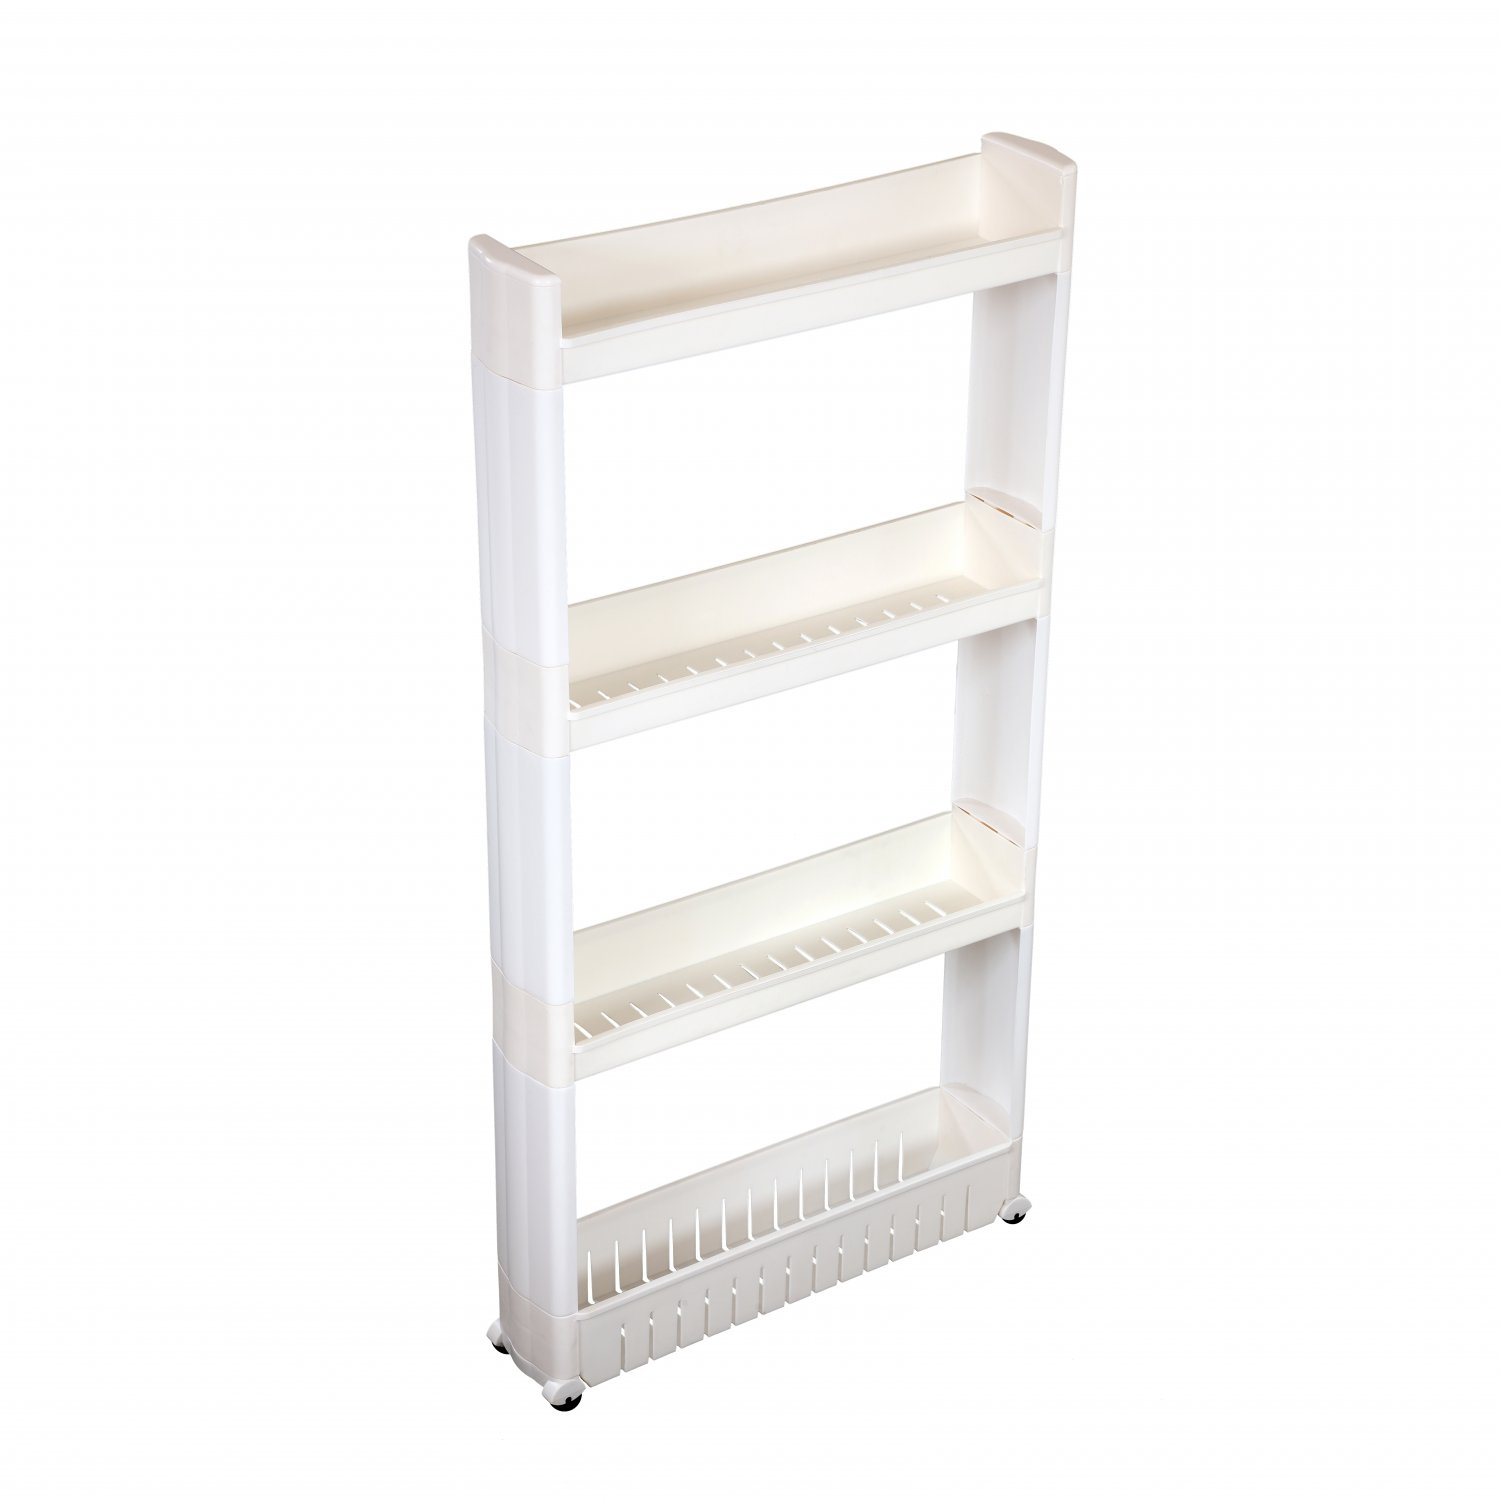 4 Tier Slide Out Kitchen Bathroom Storage Tower Shelf Organiser